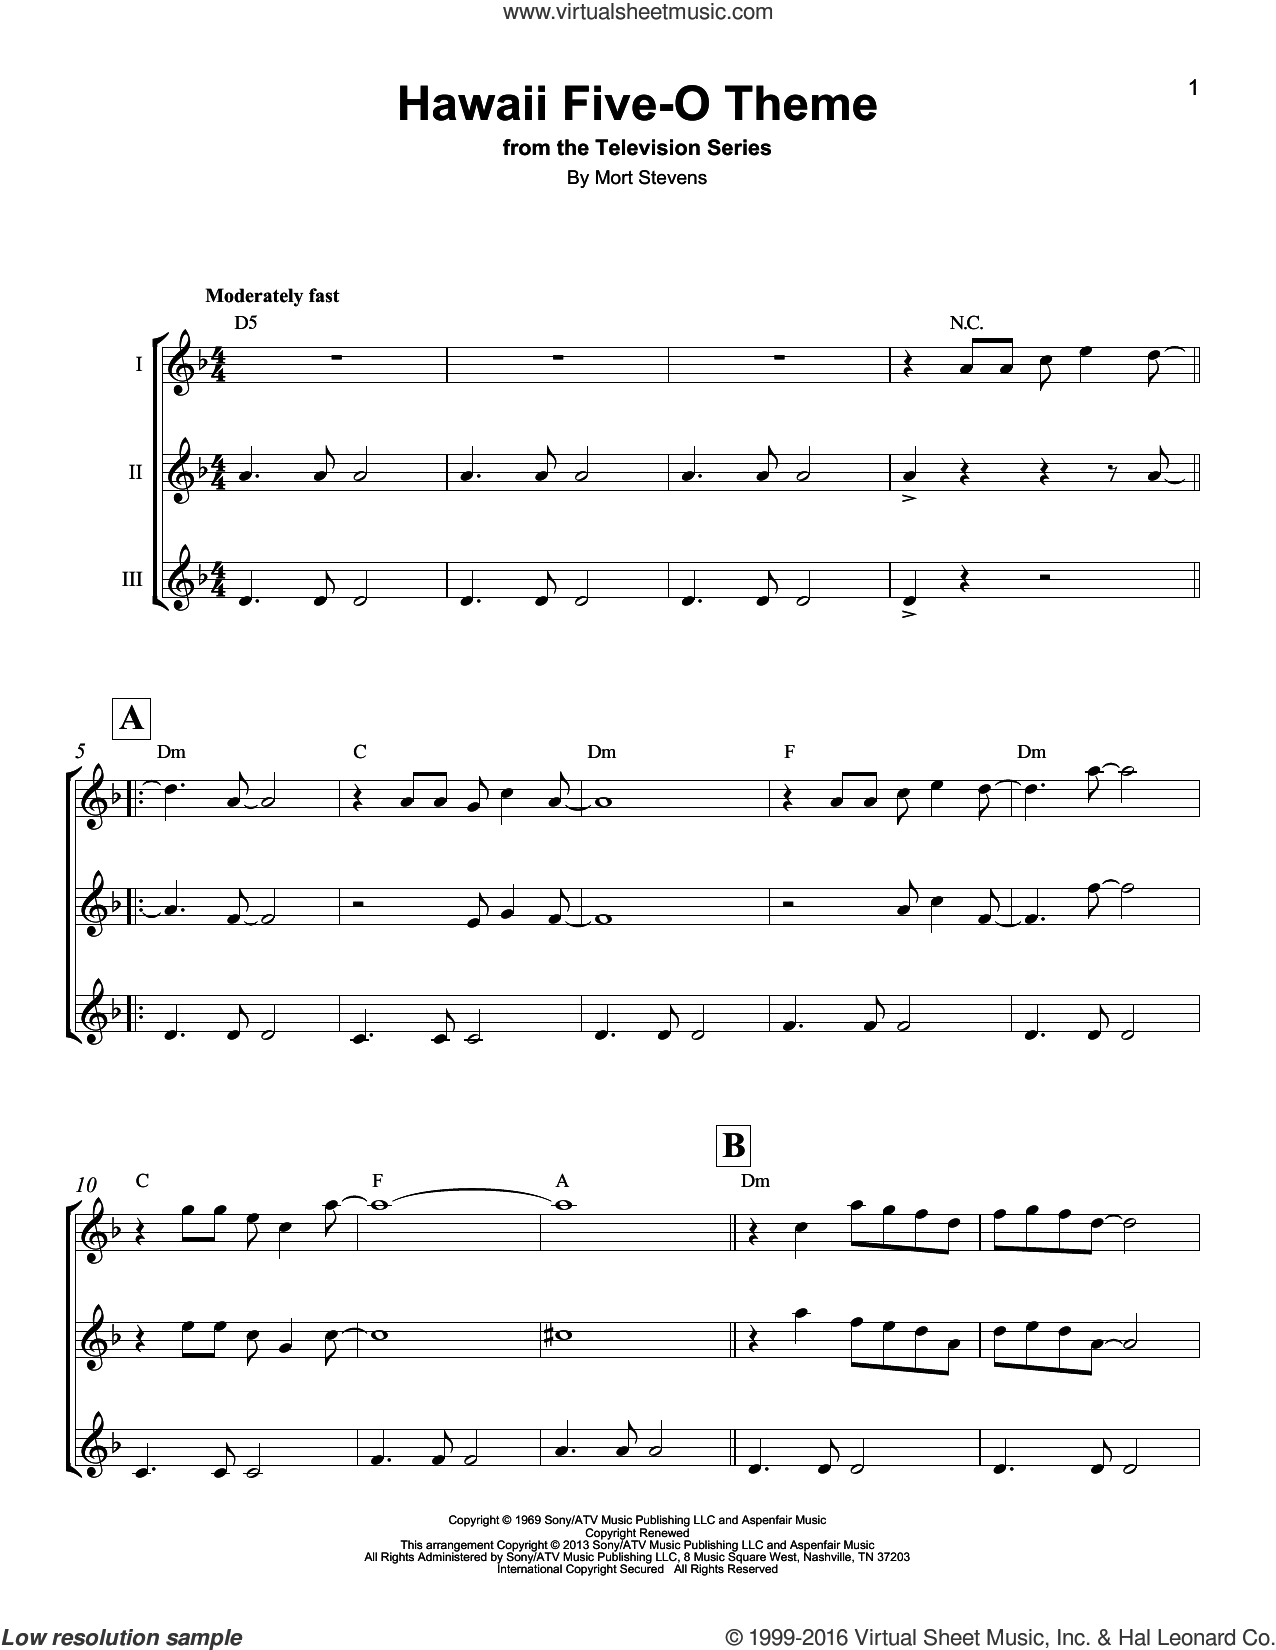 Hawaii Five-O Theme sheet music for ukulele ensemble by The Ventures and Mort Stevens, intermediate skill level